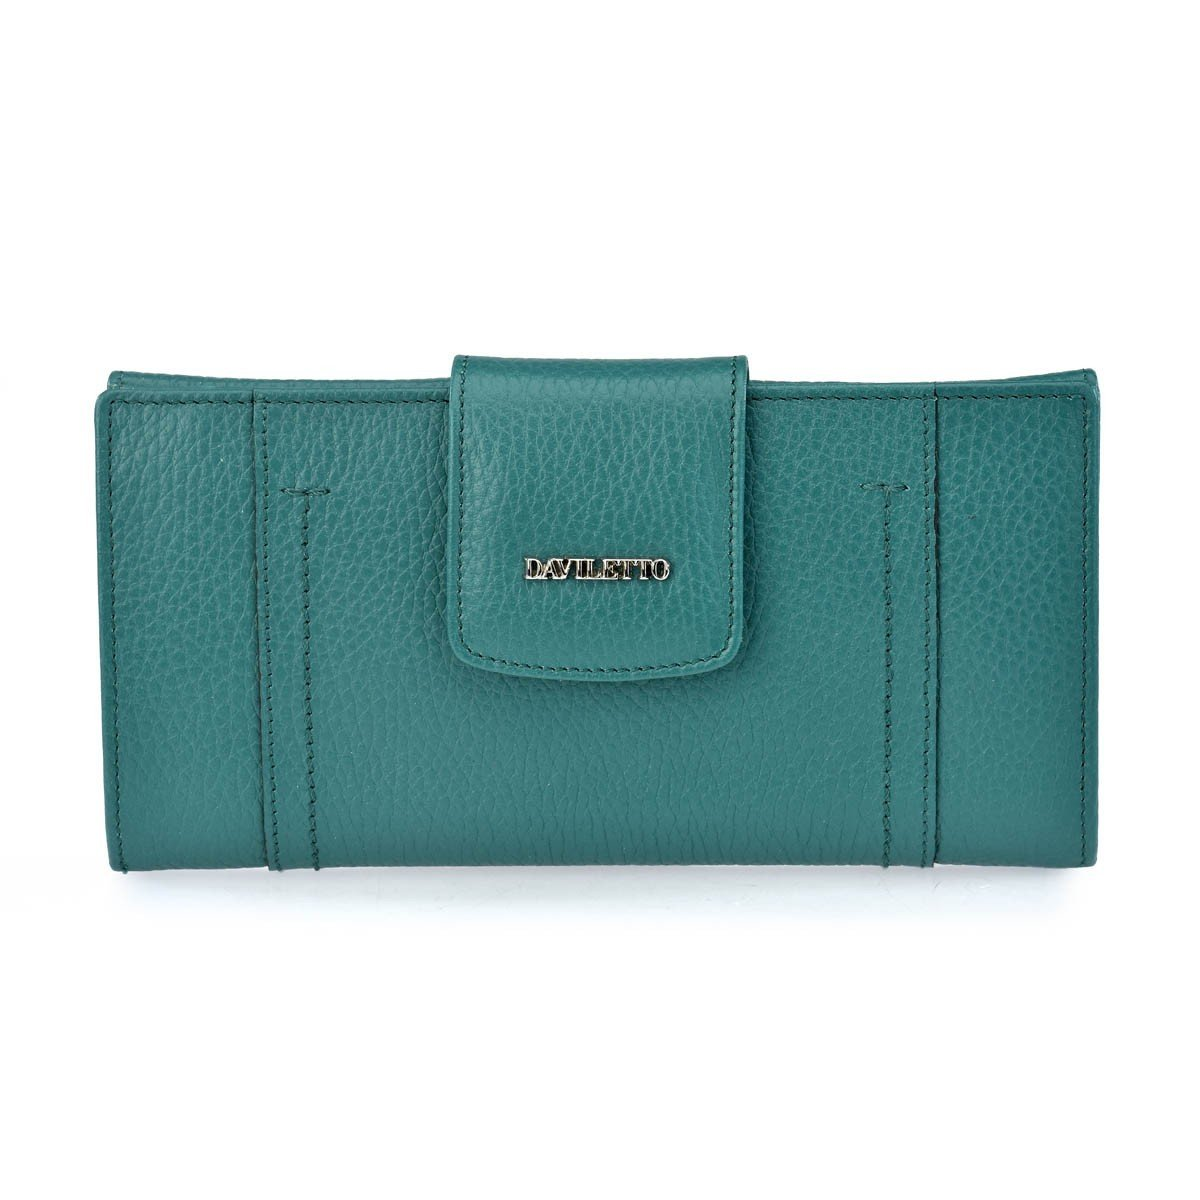 Daviletto Monedero billetero para mujer 4581 (Color: Verde ...